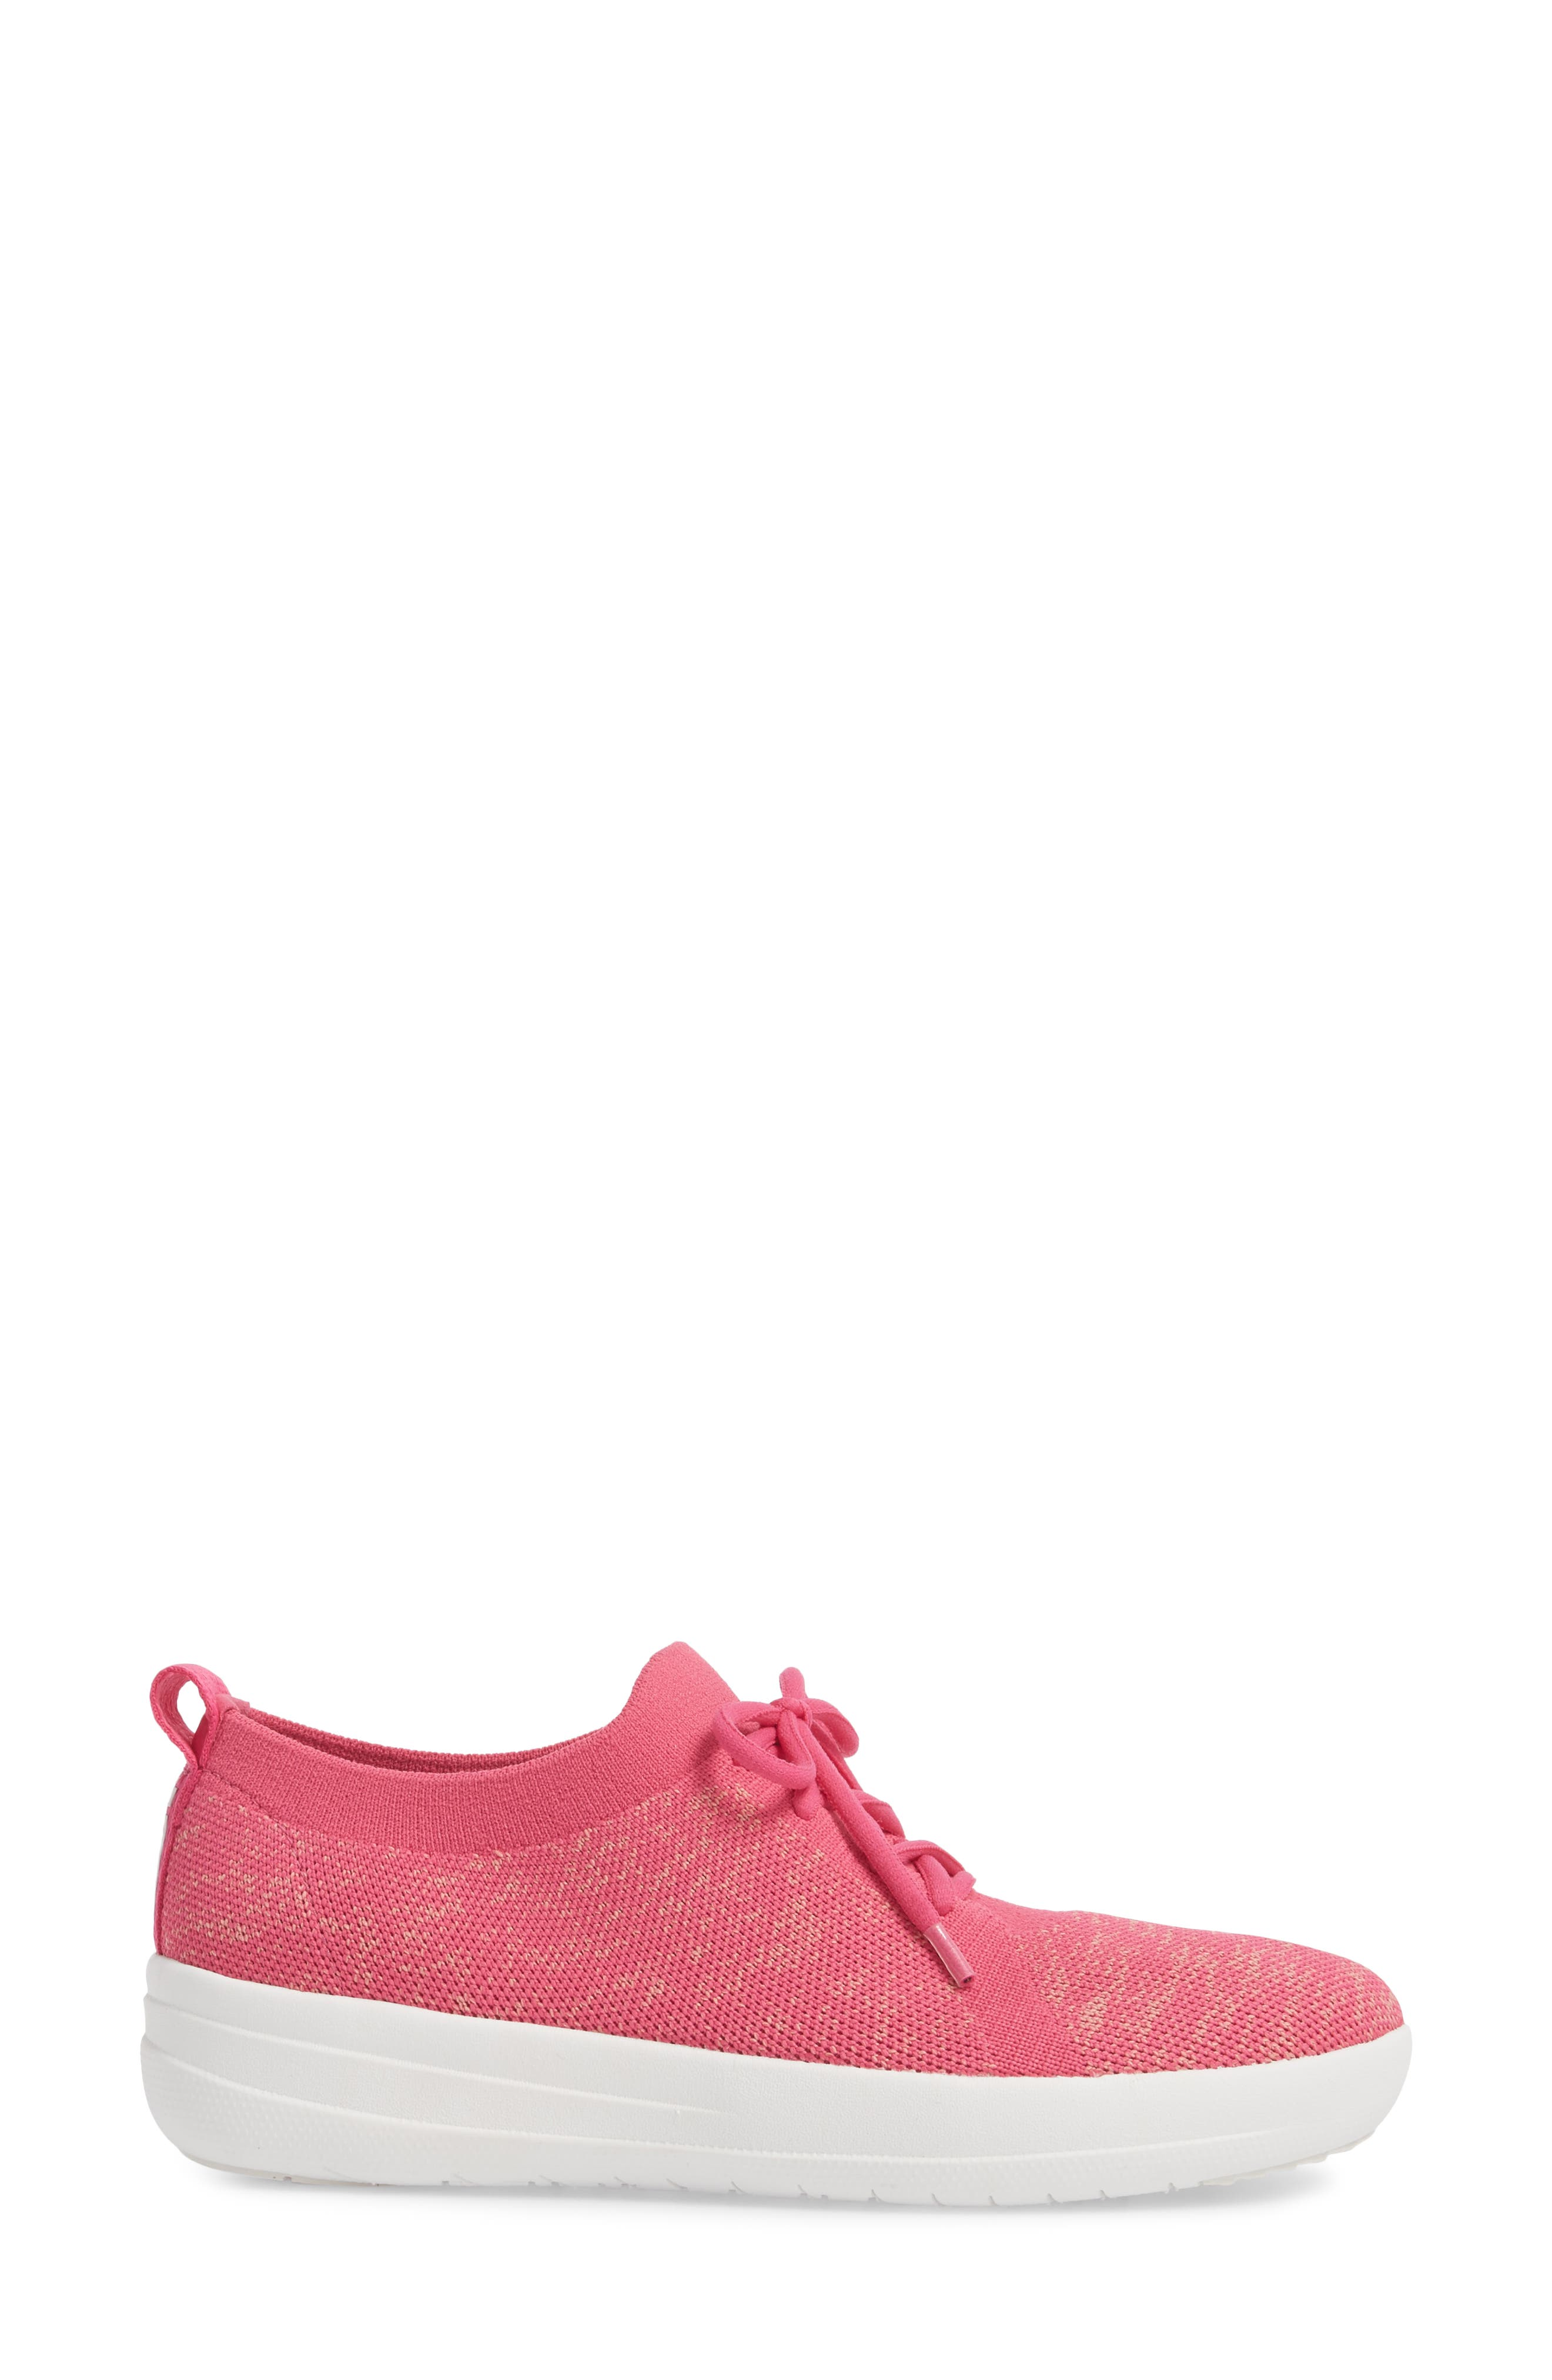 F-Sporty Uberknit<sup>™</sup> Sneaker,                             Alternate thumbnail 3, color,                             FUCHSIA/ DUSTY PINK